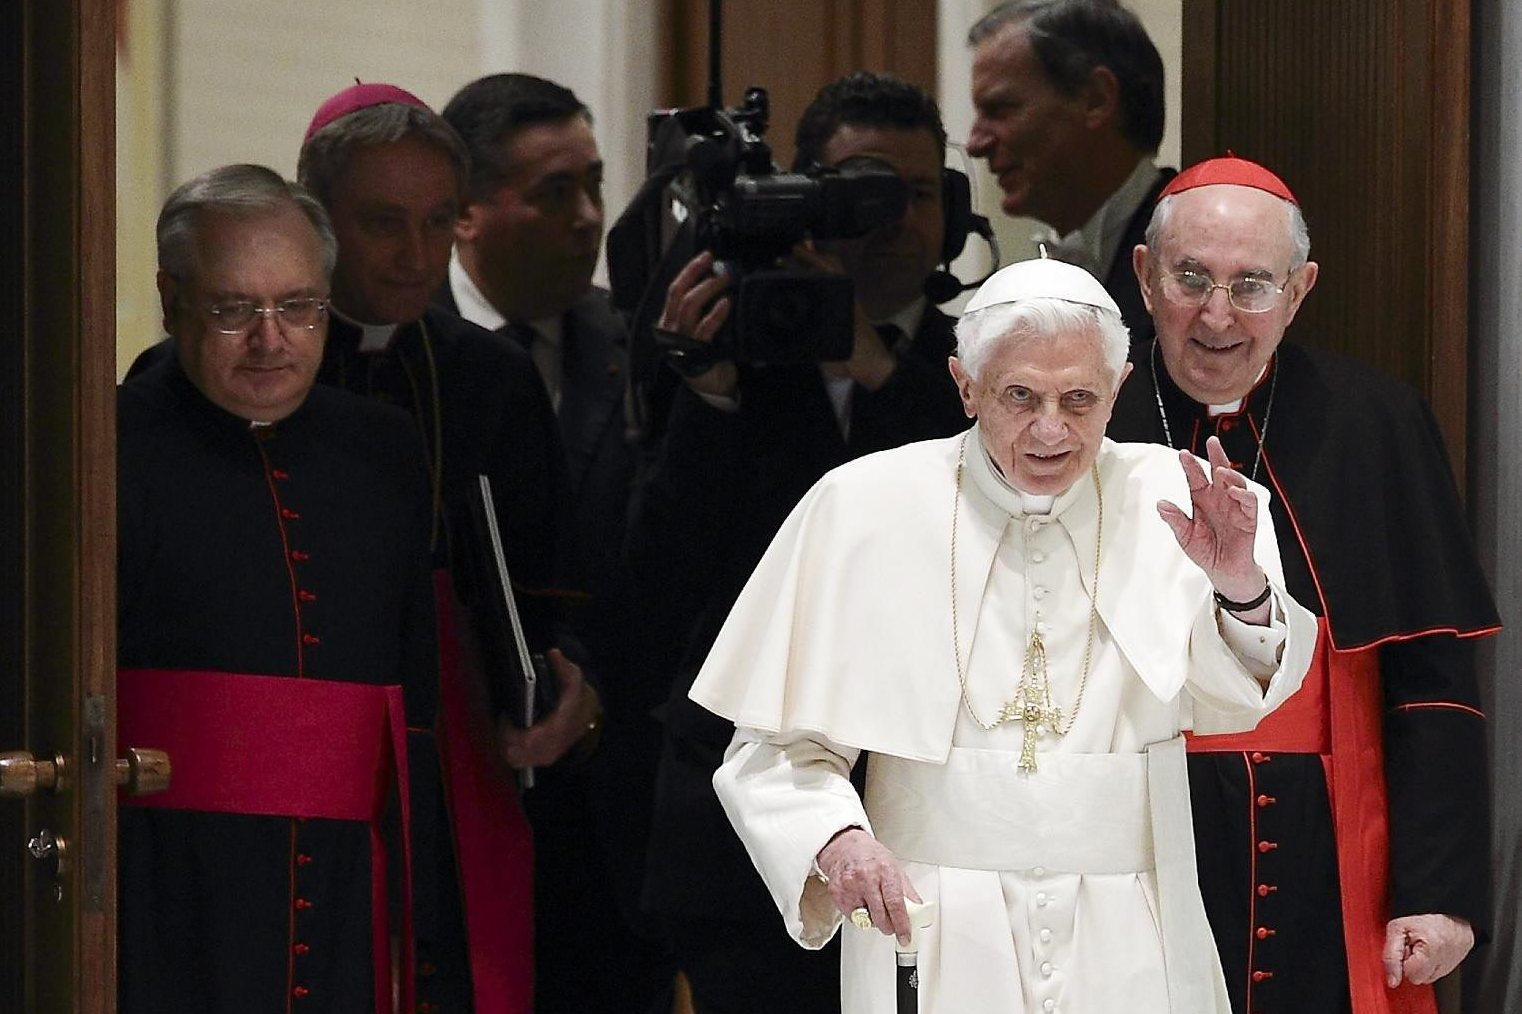 VATICAN POPE SPECIAL AUDIENCE